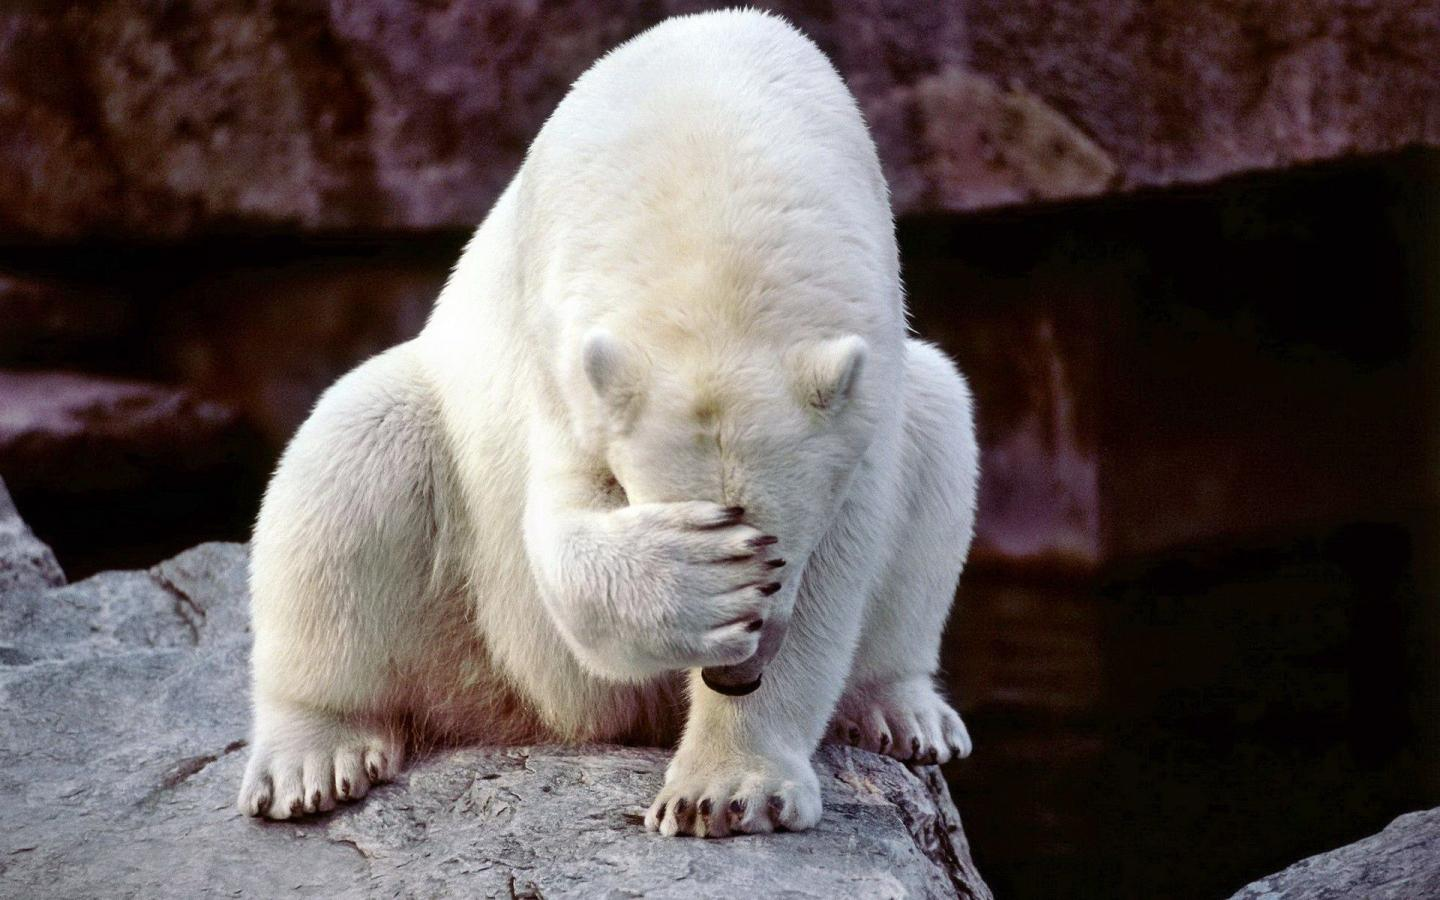 94078_Facepalm-Bear-900x1440.jpg